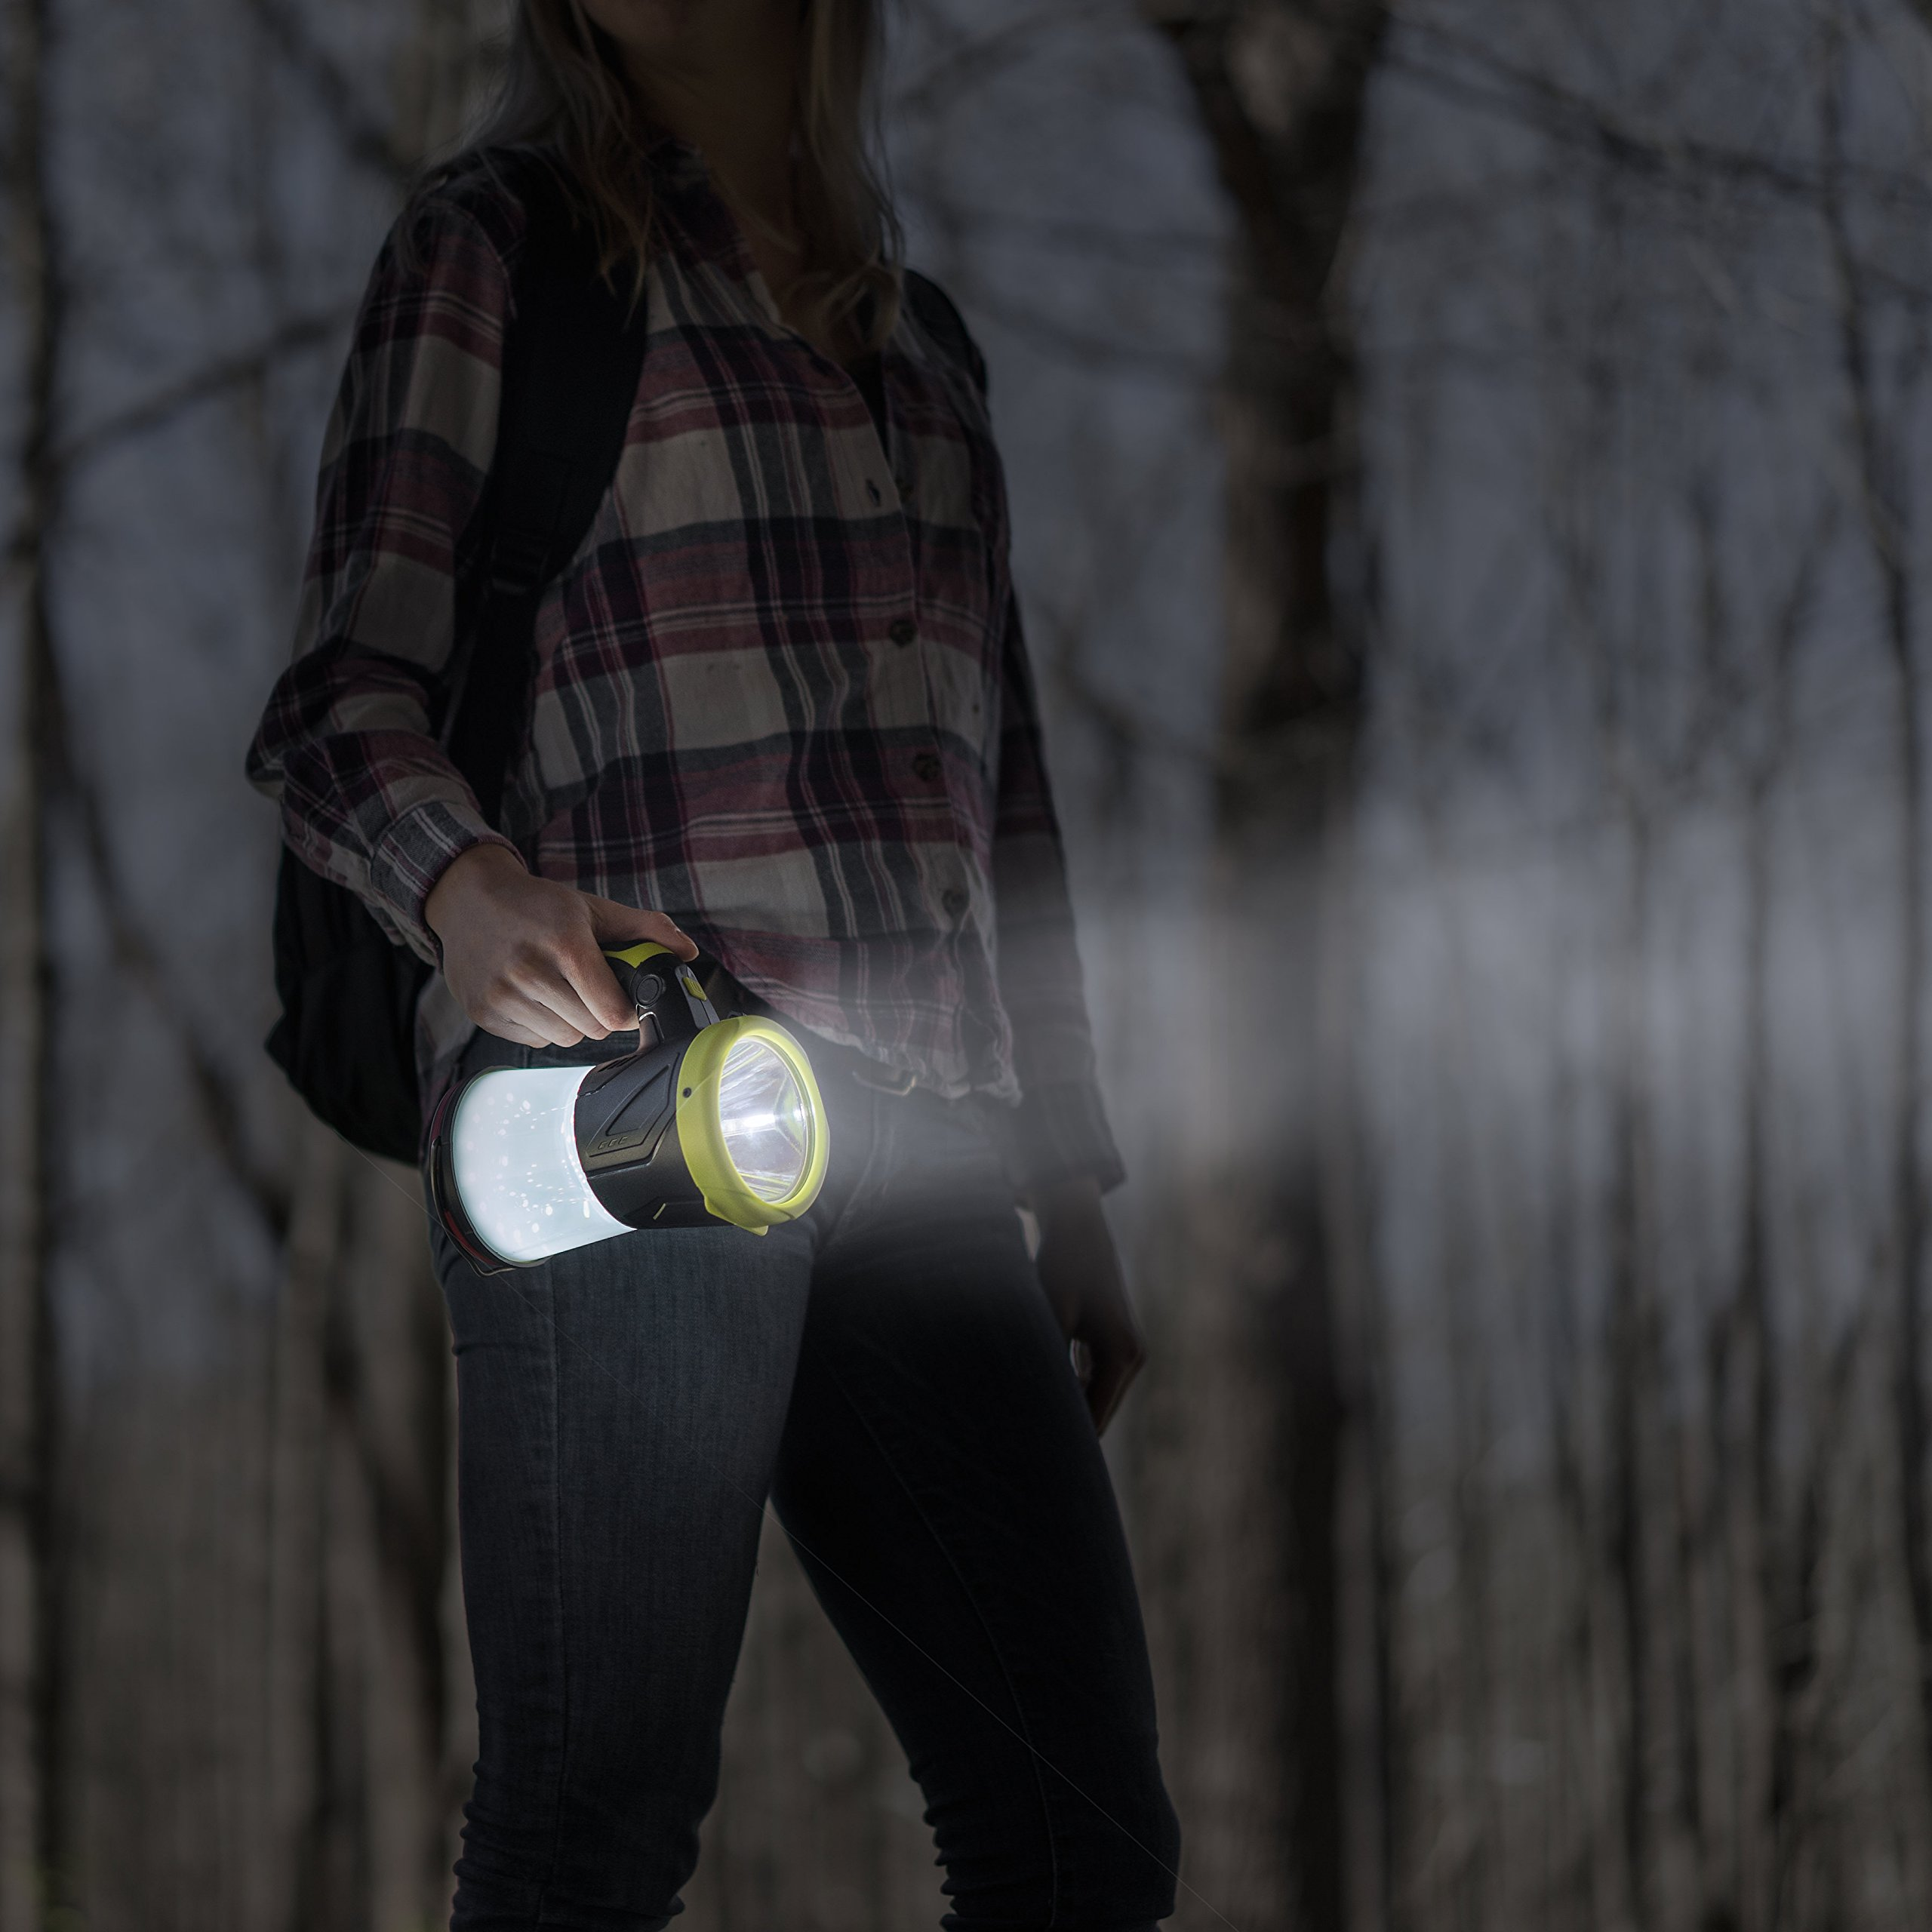 Rechargeable LED lantern Flashlight, USB Charging Cord Included, Super Bright 4 in 1 Portable LED Searchlight & Torch Light, Great for hiking, Camping Gear, Indoor-Outdoor Use, Shoulder Strap Included by SAMLITE (Image #7)